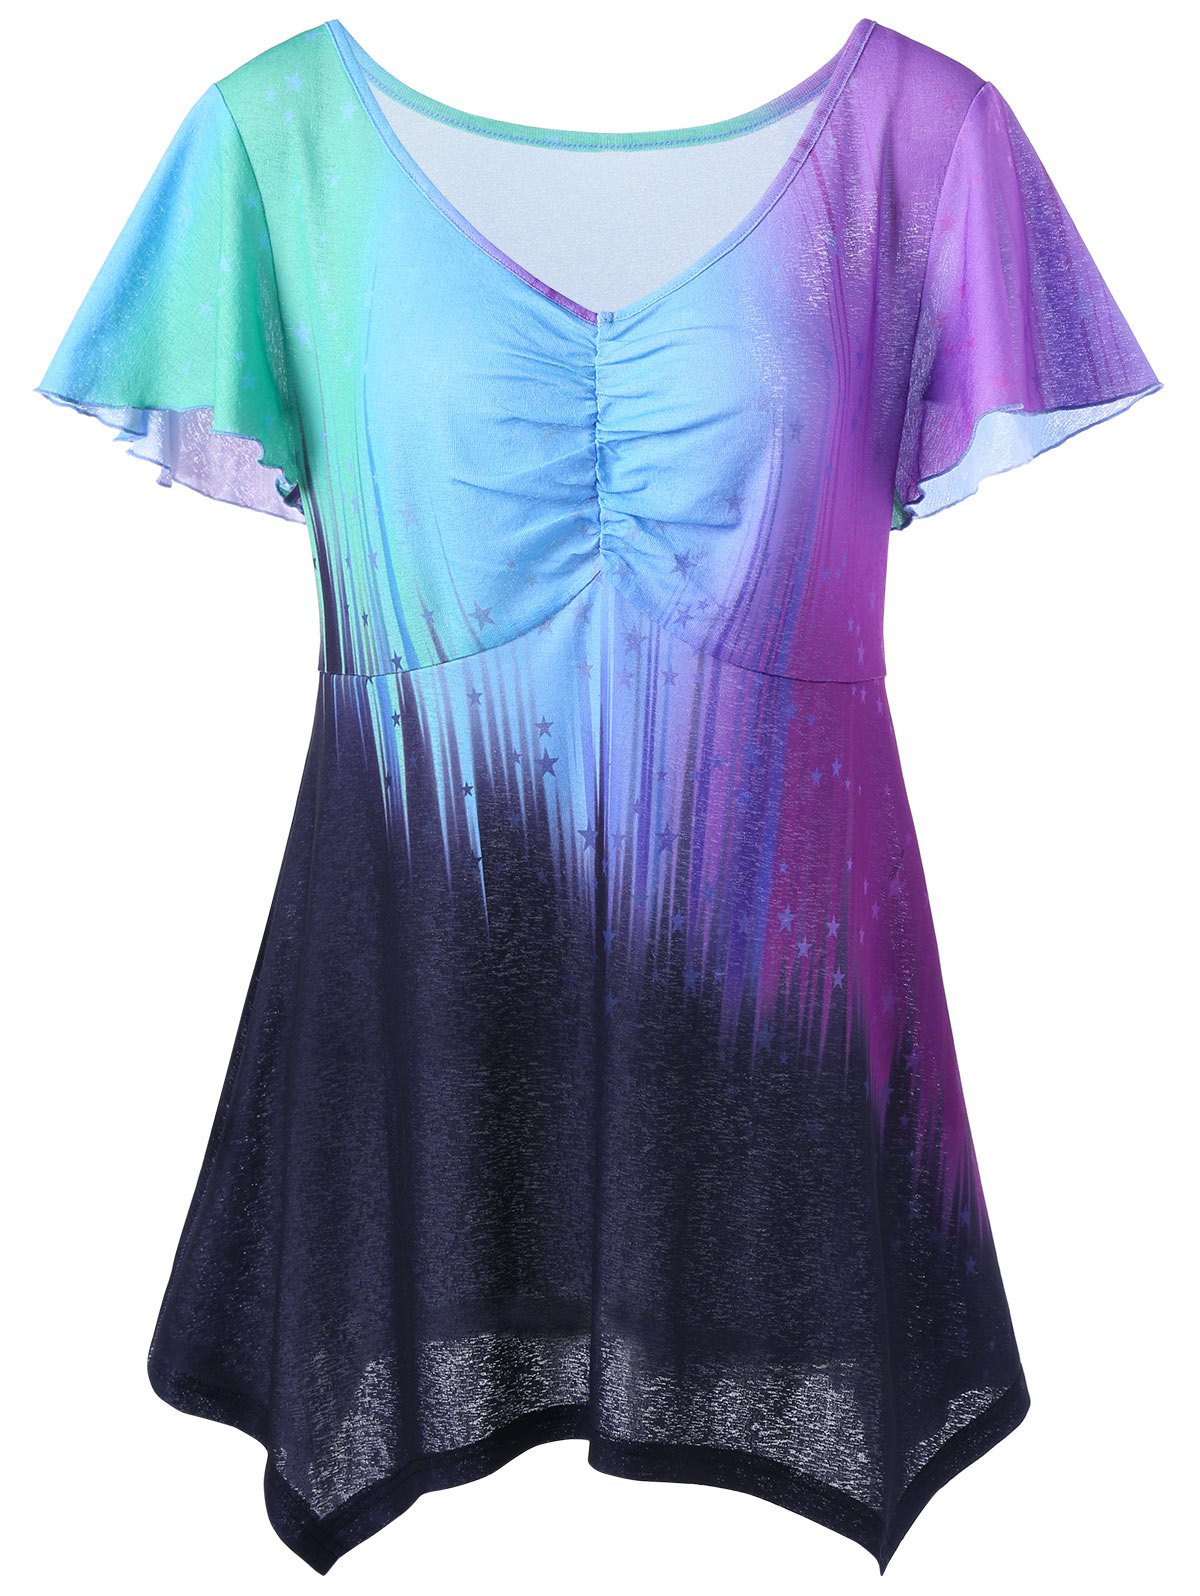 V Neck Plus Size Ombre Top - COLORMIX 4XL